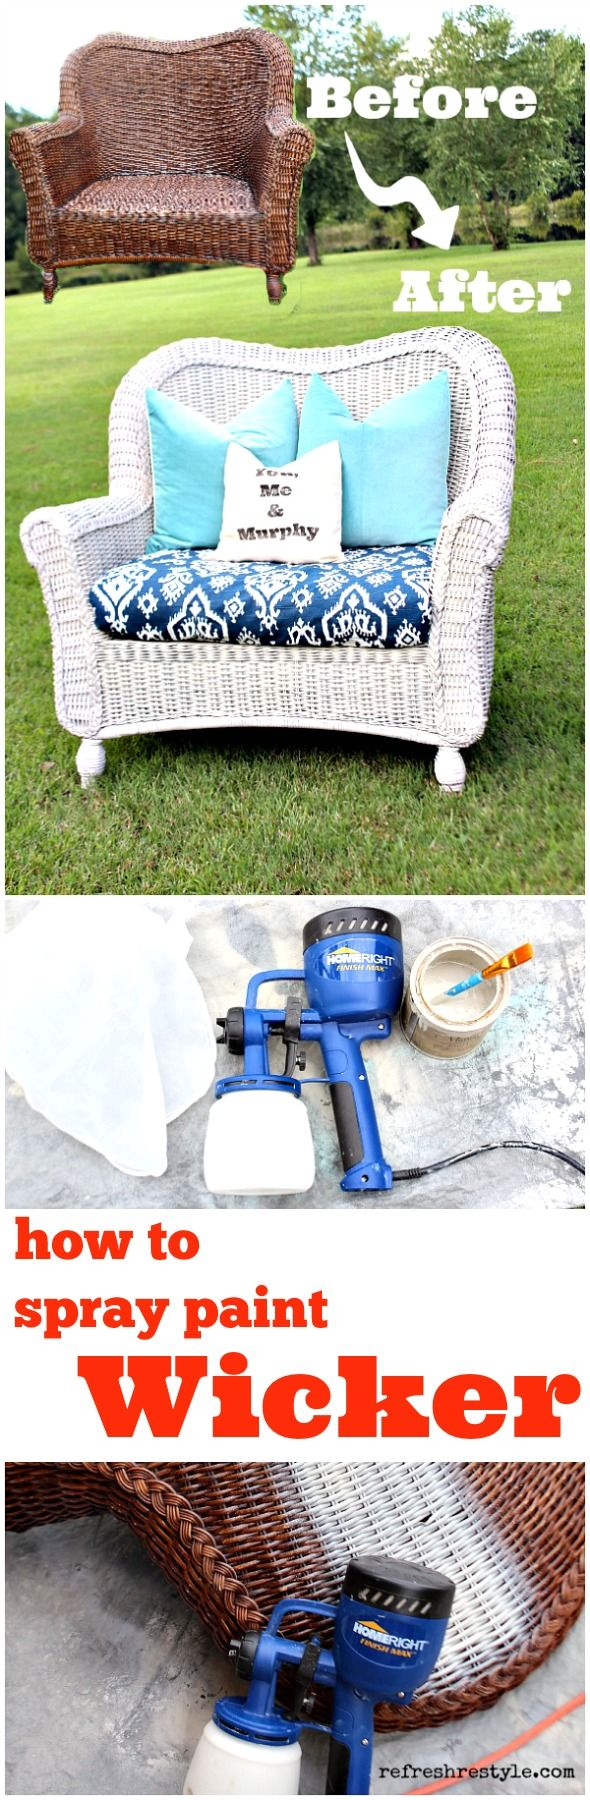 How To Spray Paint Wicker How To Spray Paint Furniture And Wicker Furniture